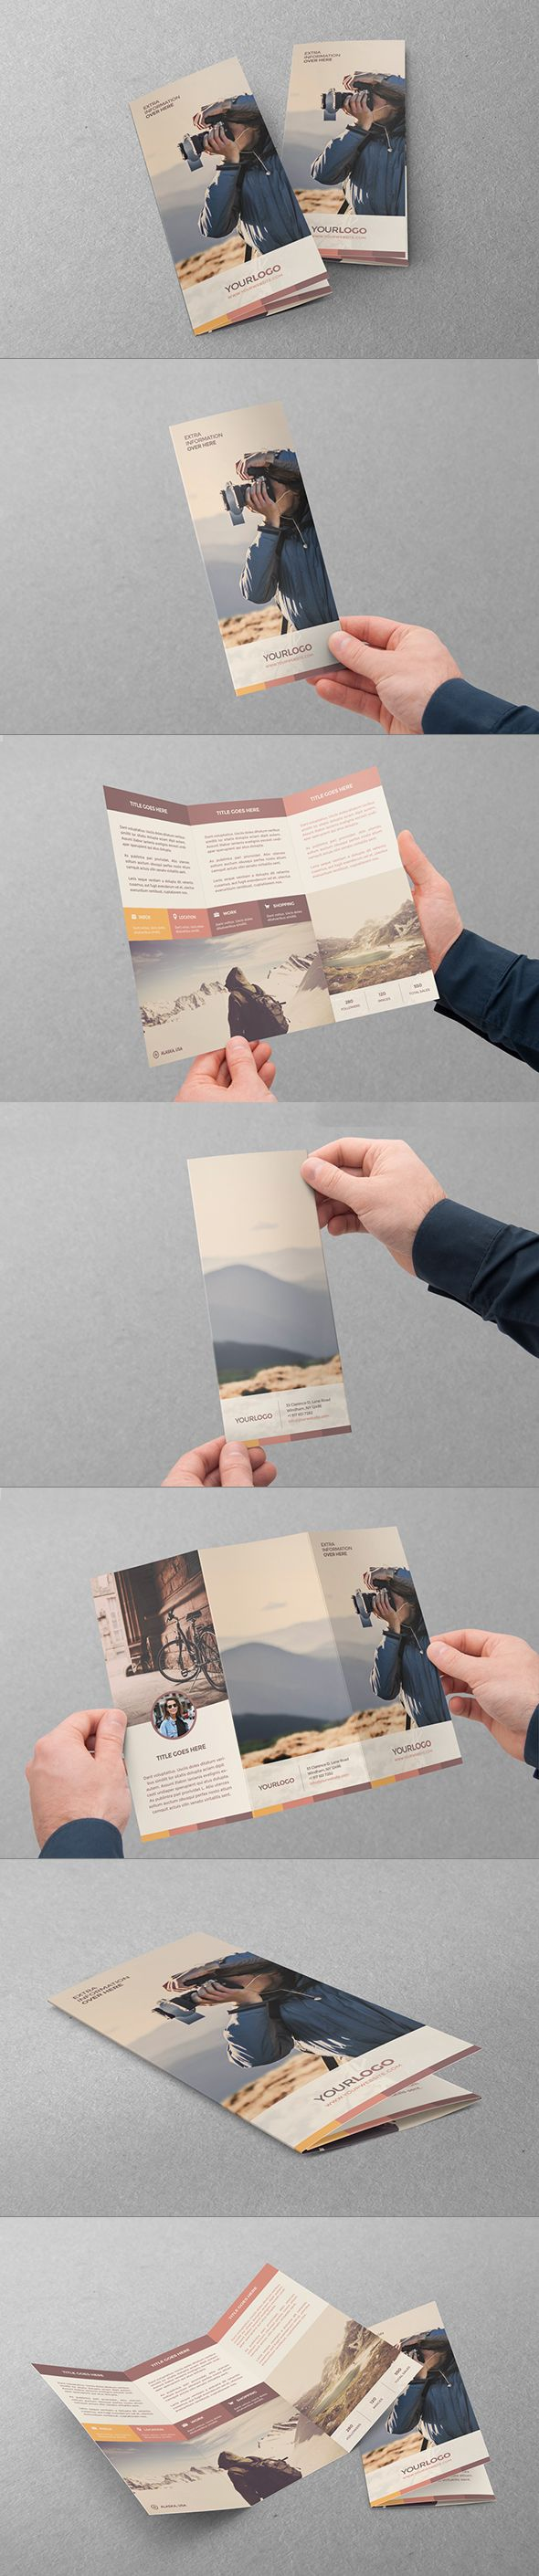 Retro Vintage Hipster Trifold. Download here: http://graphicriver.net/item/retro-vintage-hipster-trifold/11084095?ref=abradesign #trifold #brochure #design